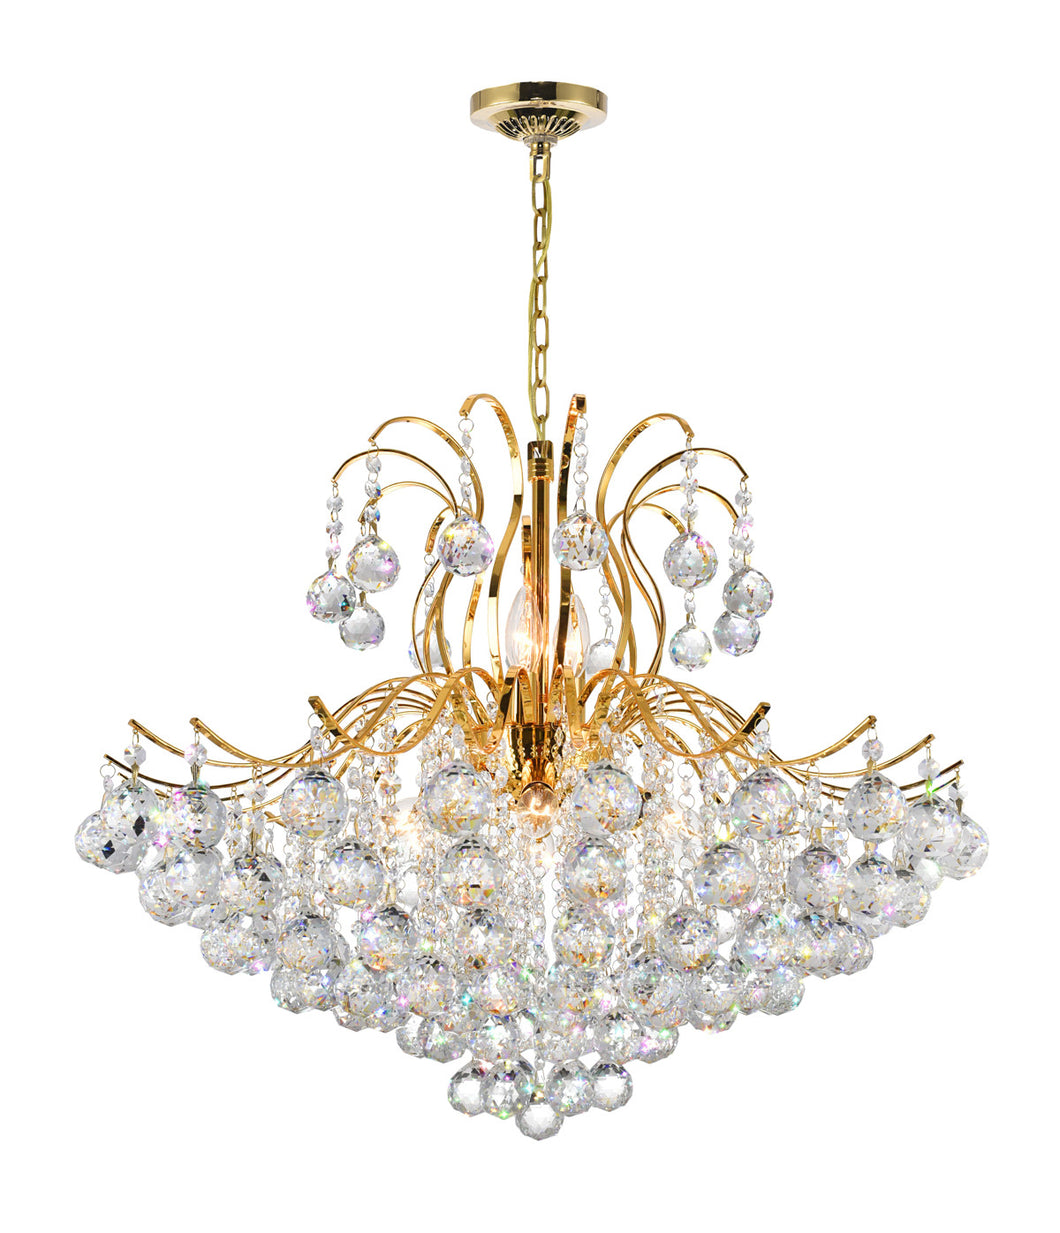 9 Light Down Chandelier with Gold finish